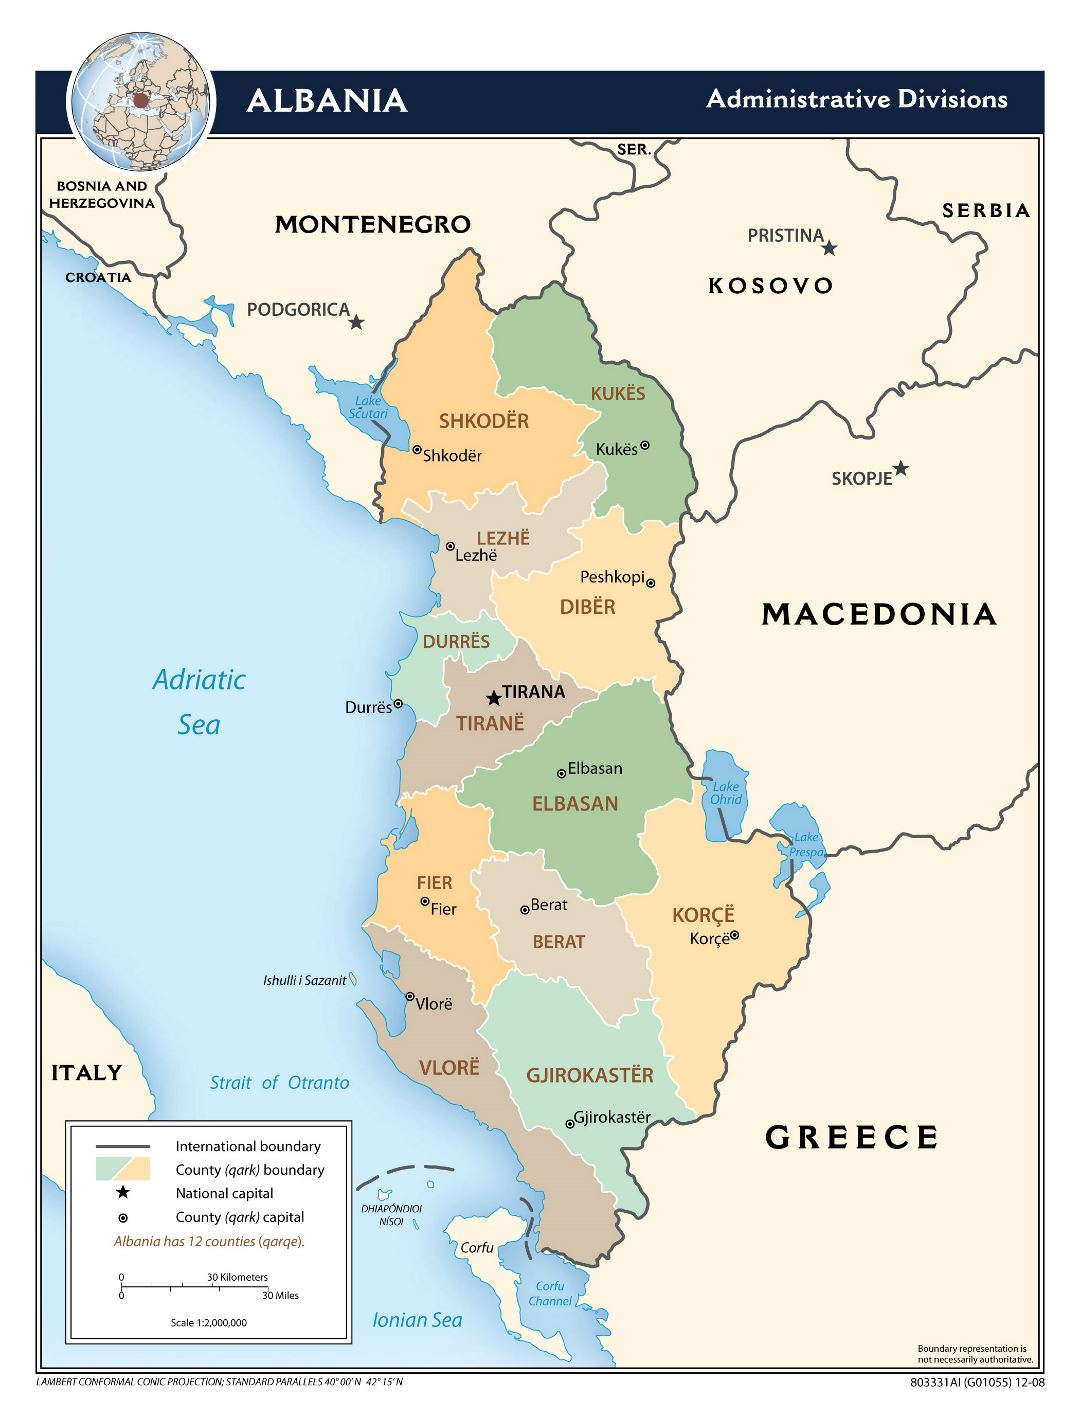 Large scale administrative divisions map of Albania - 2008